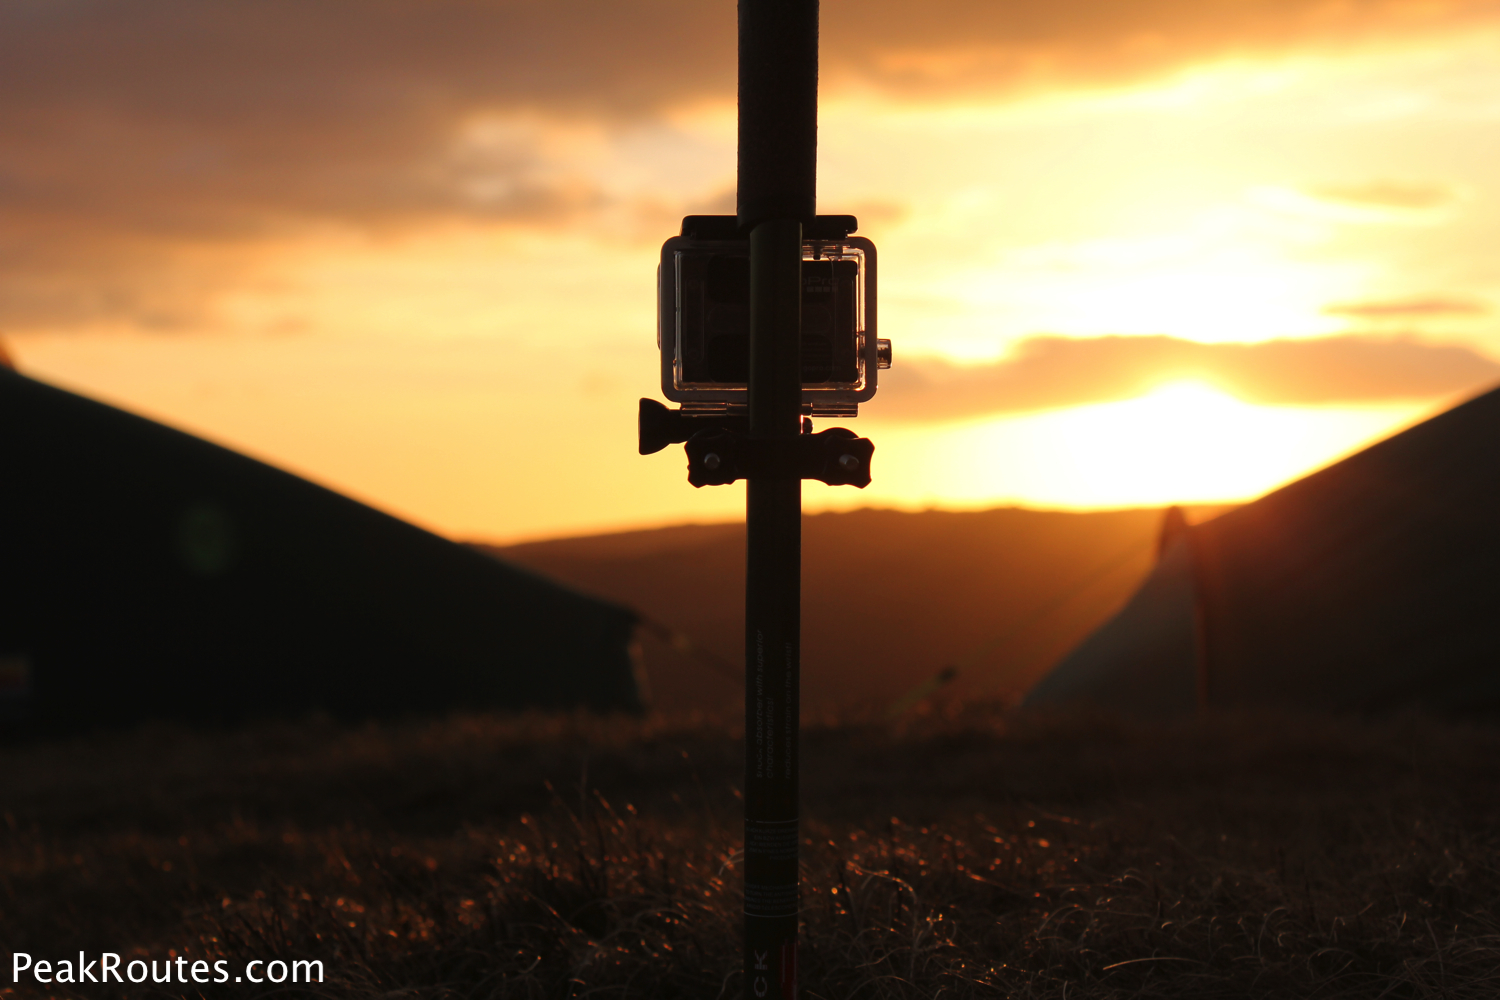 The GoPro Hero 3 shooting a sunset Time Lapse